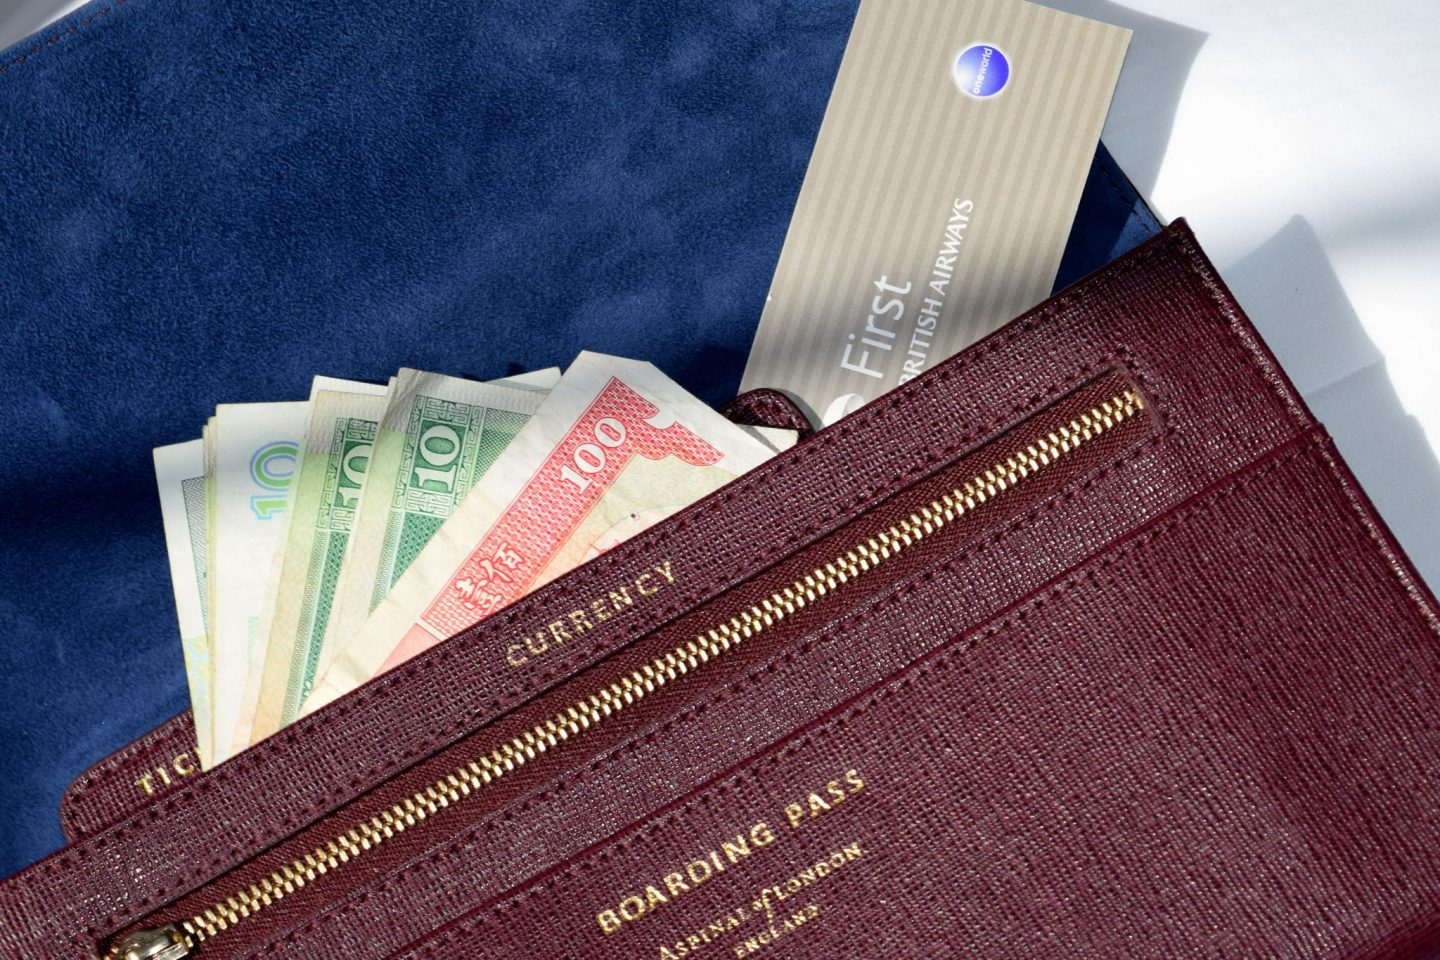 Aspinal of London Travel Wallet interior